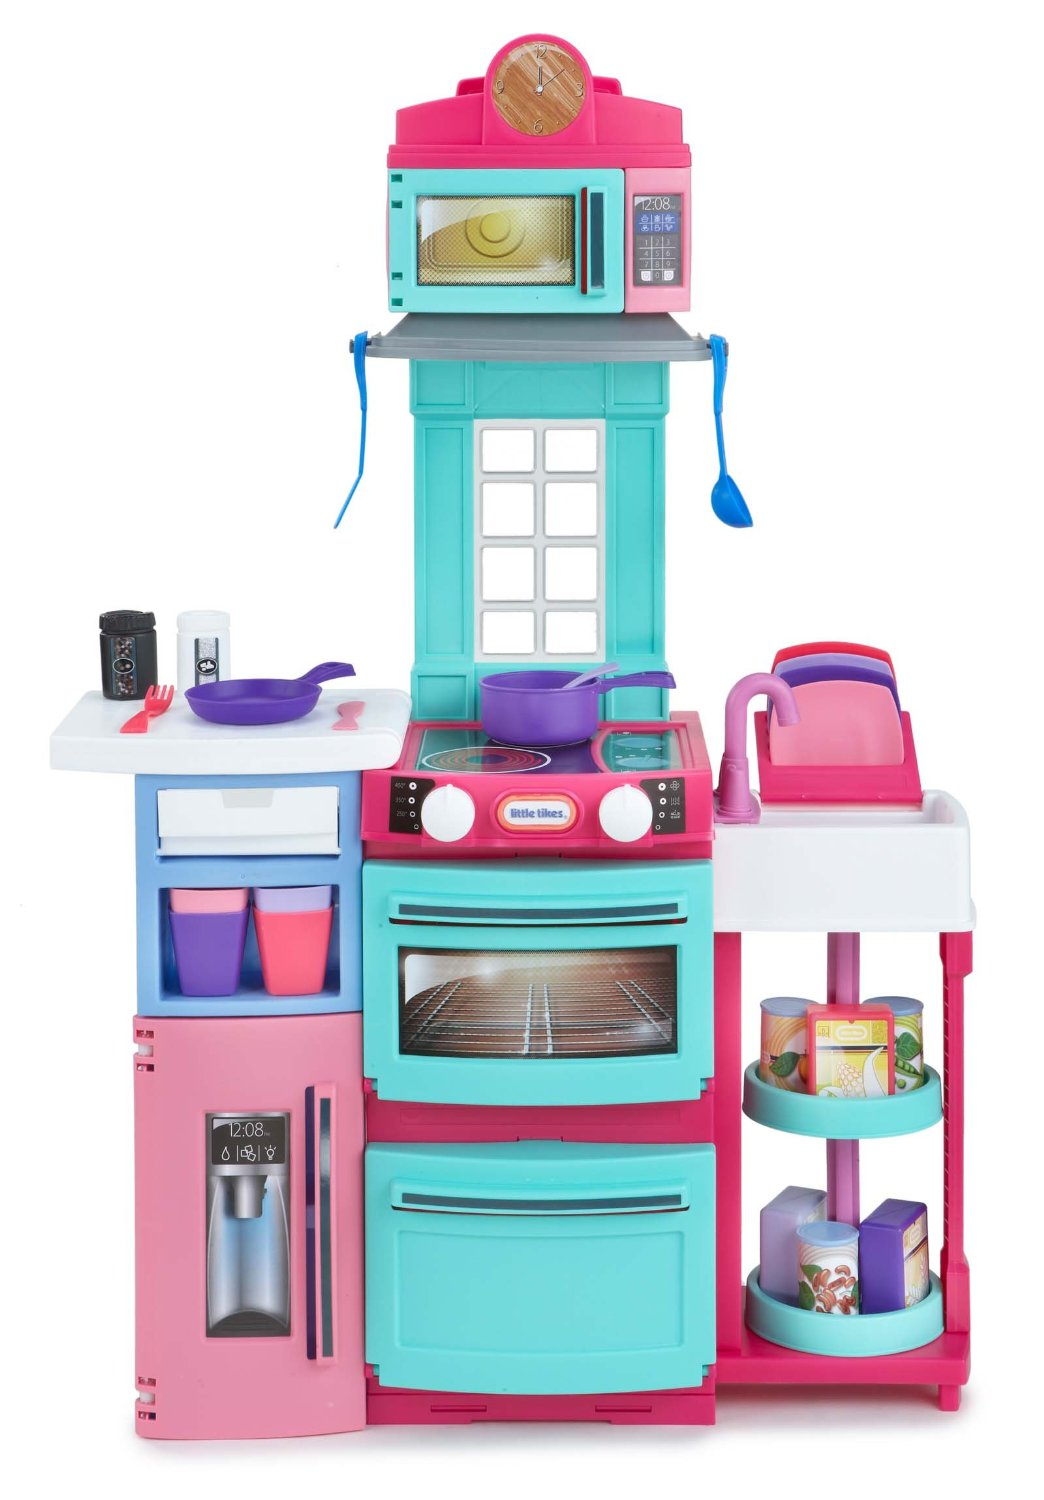 Little Tikes Cook n\' store Kitchen - Cook Up Some Cuteness - Mamas ...